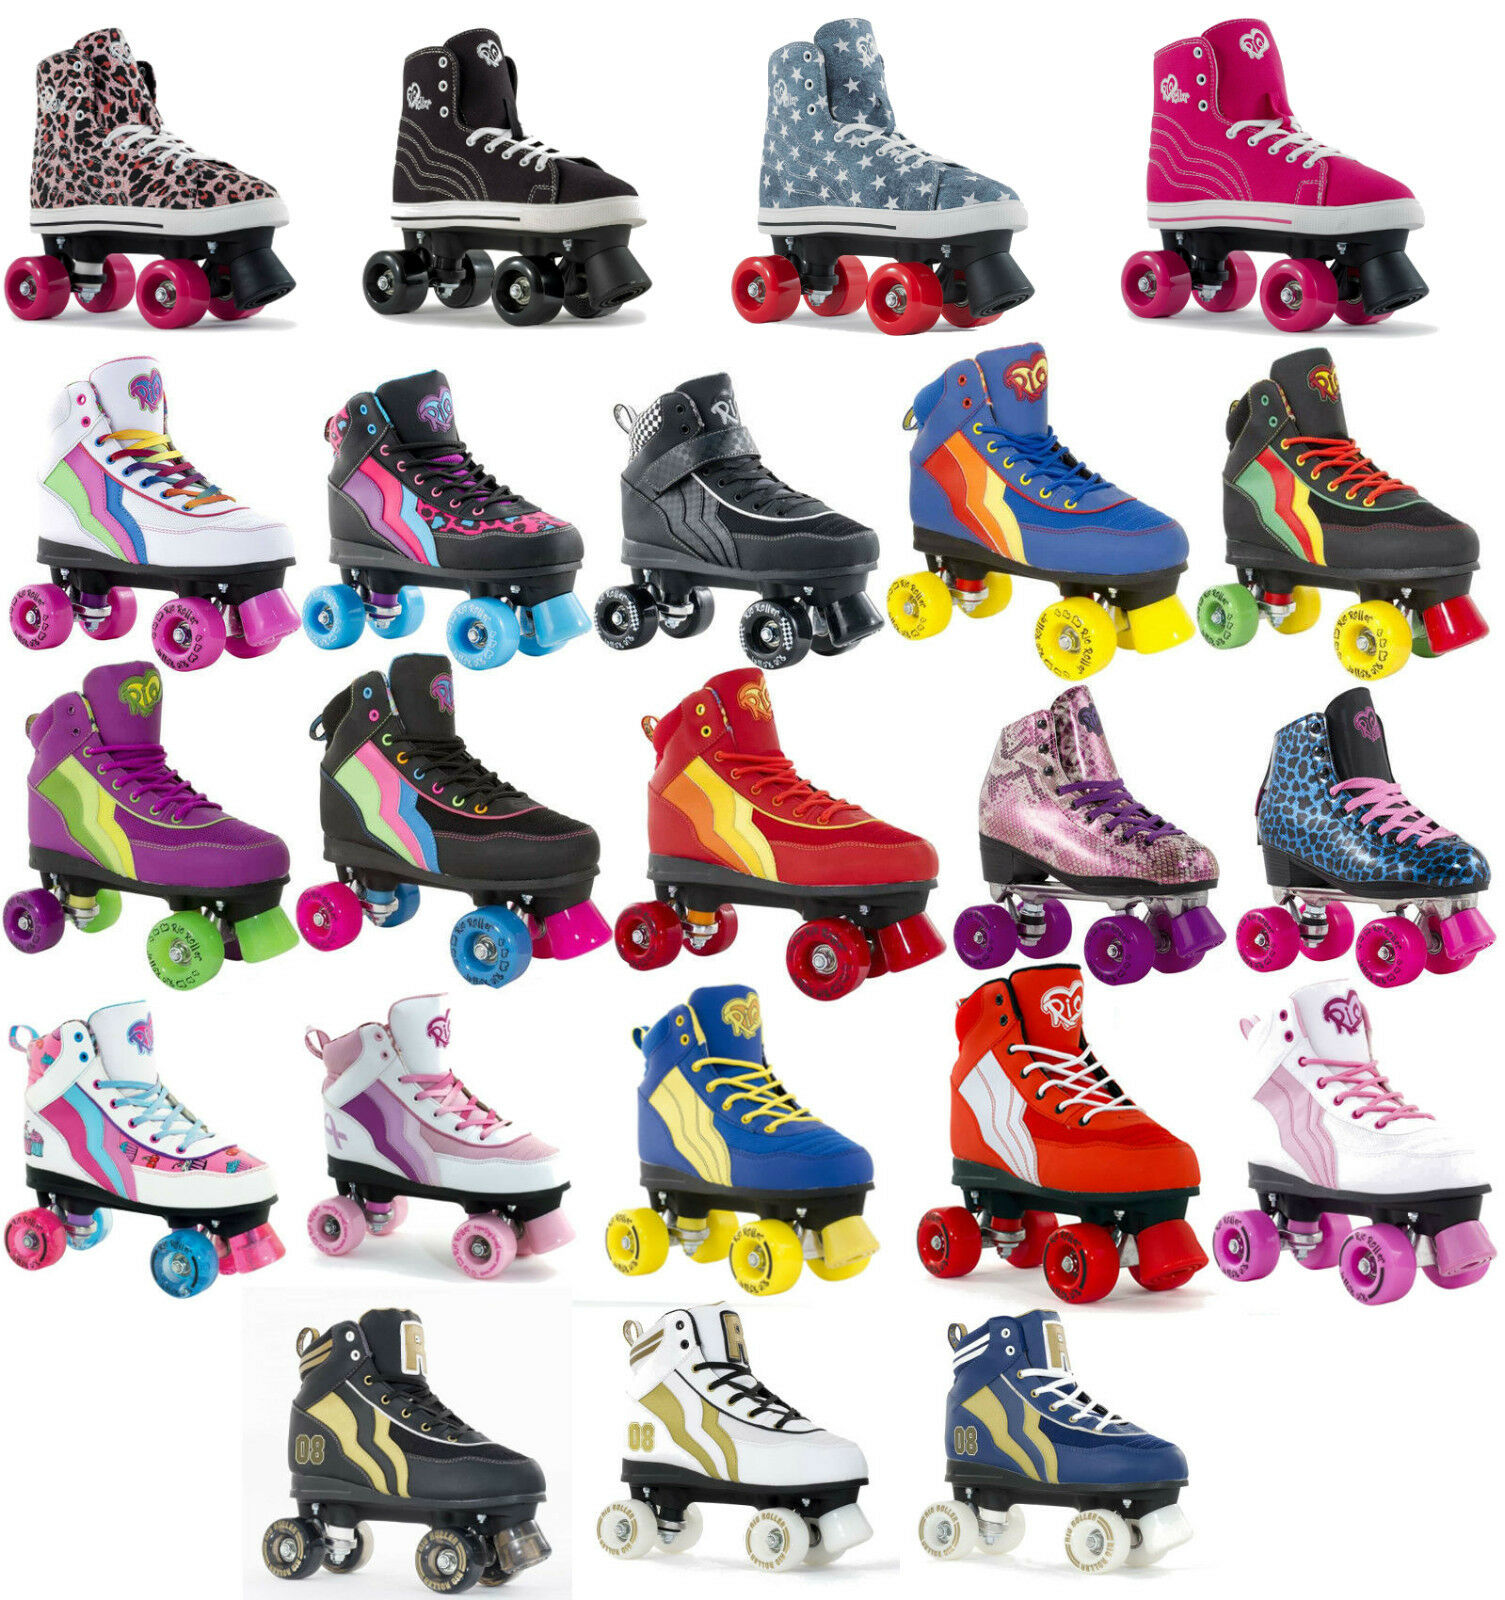 SFR Rio Roller Quad Kids / Mens / Womens Skates